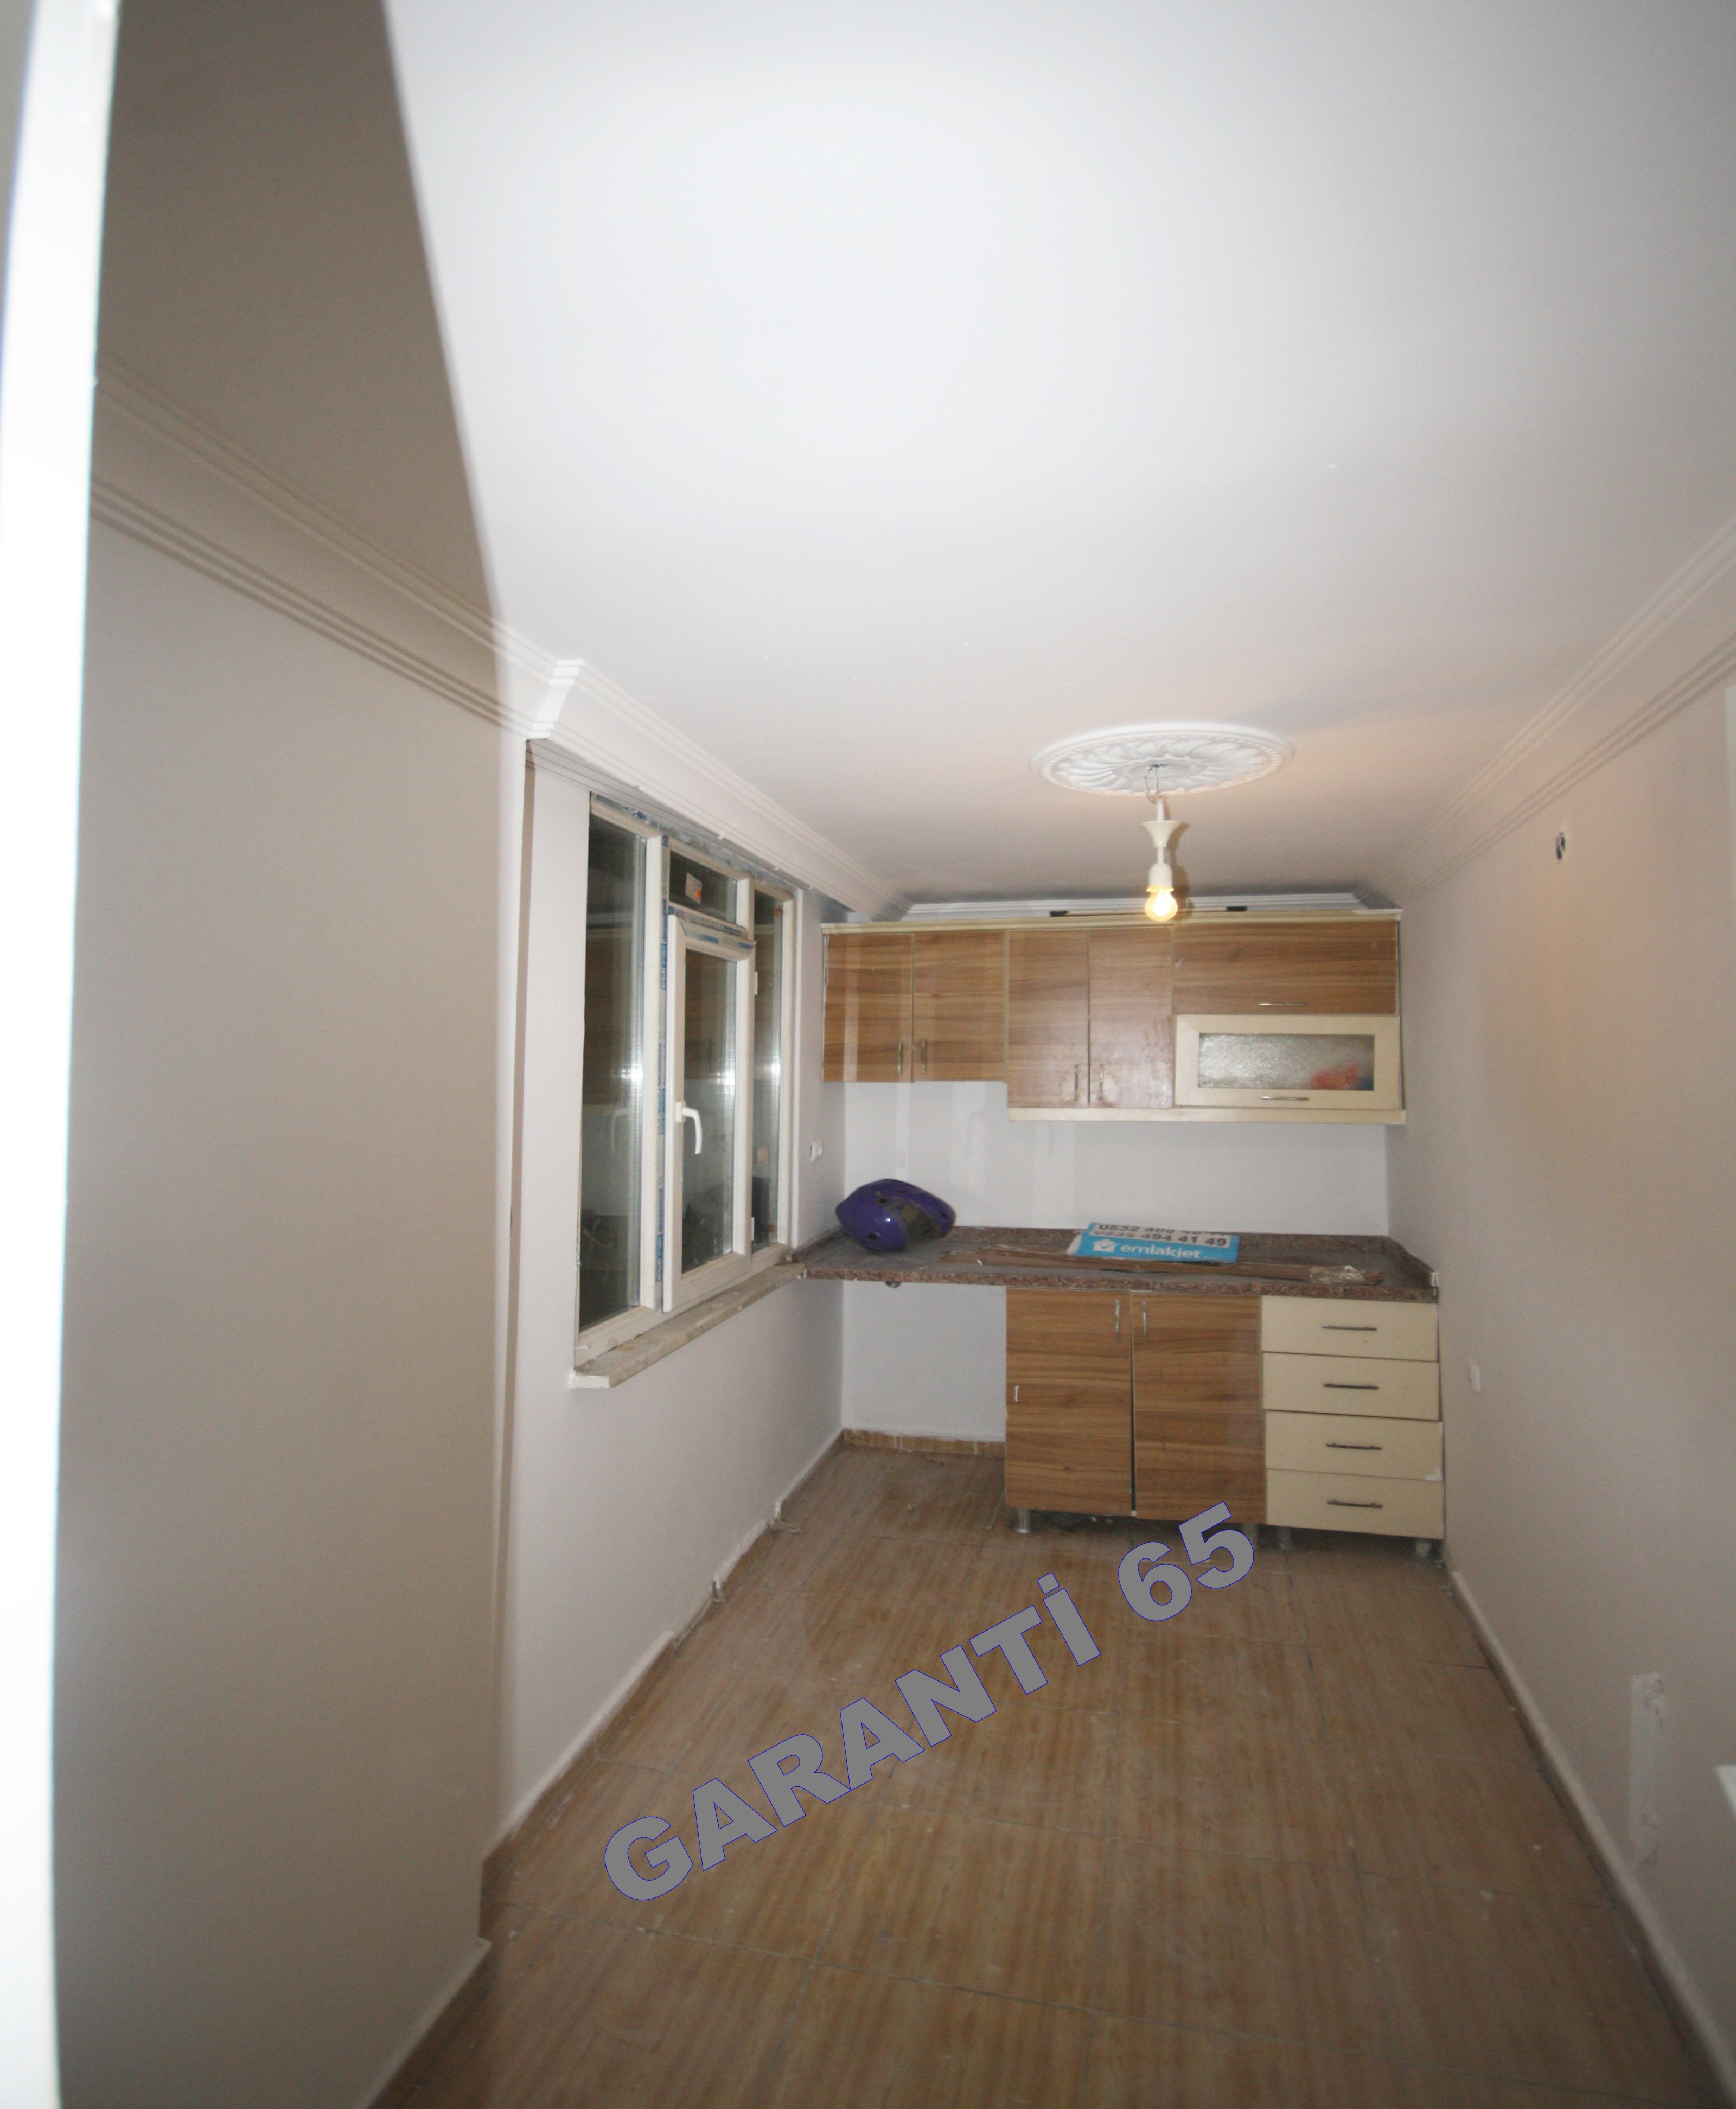 Cheap Single Apartments: 1+1 Apartment For Sale At Cheap Price In Istanbul (Turkey